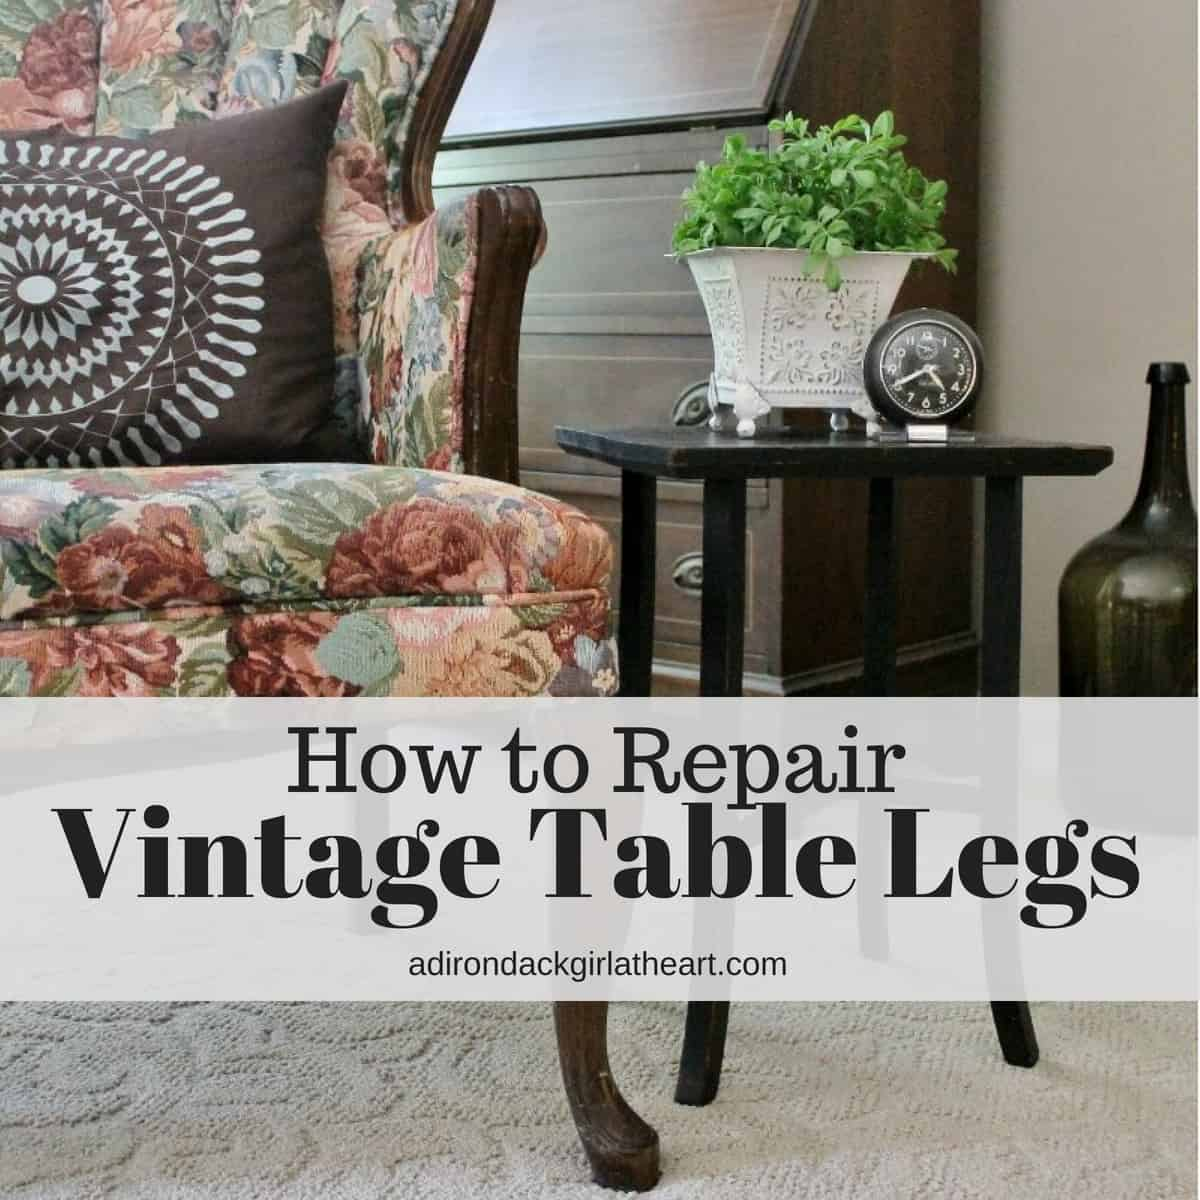 How To Repair Vintage Table Legs Adirondackgirlatheart.com